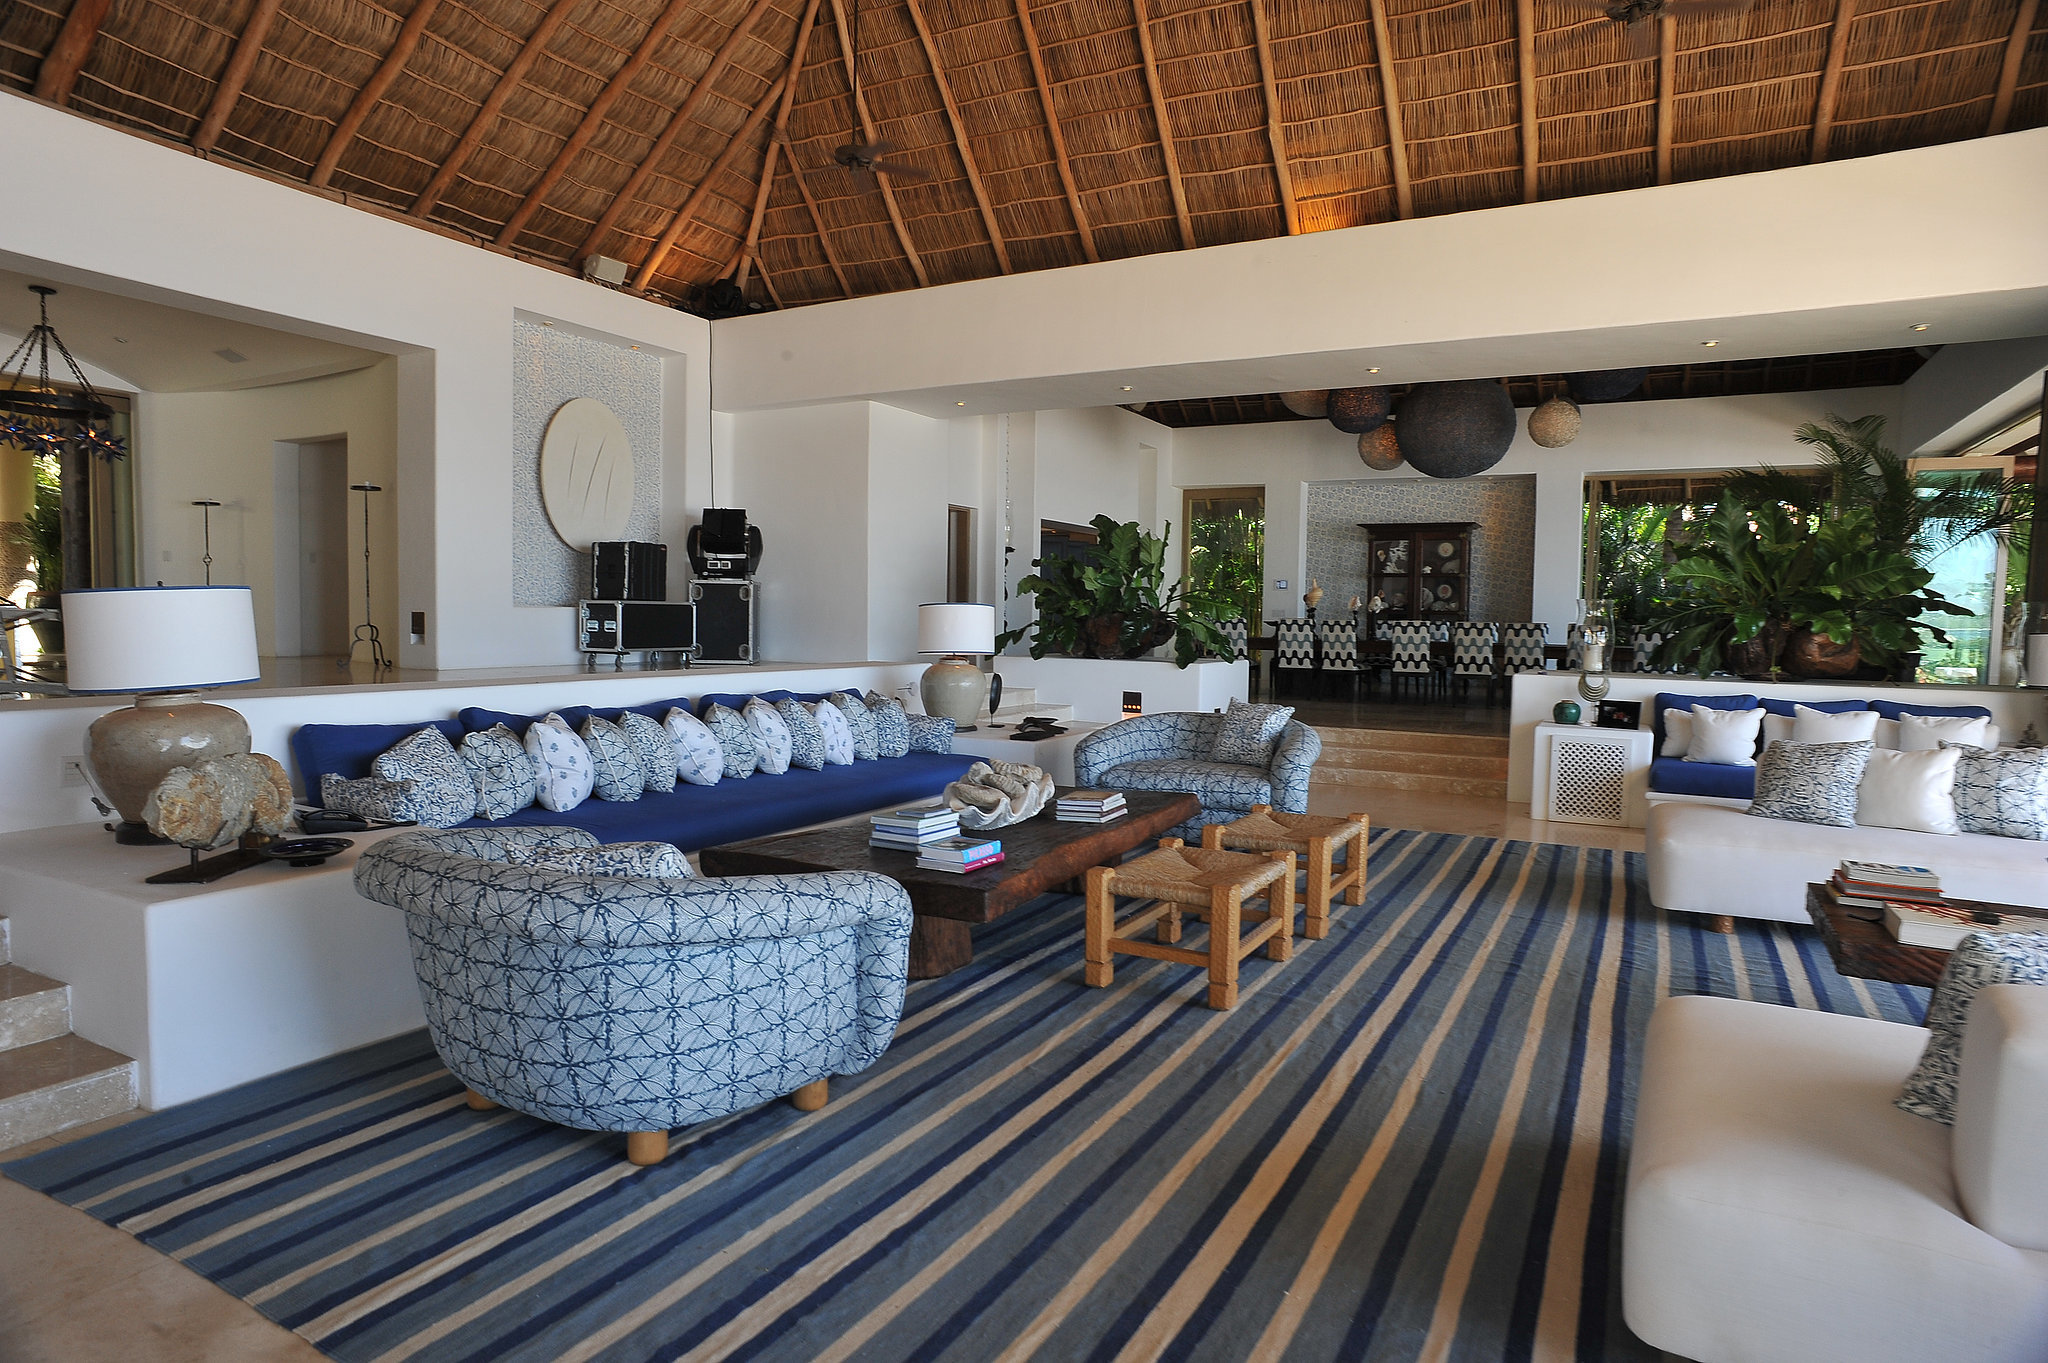 The living room's open layout leads out to the patio and offers plenty of space to relax.